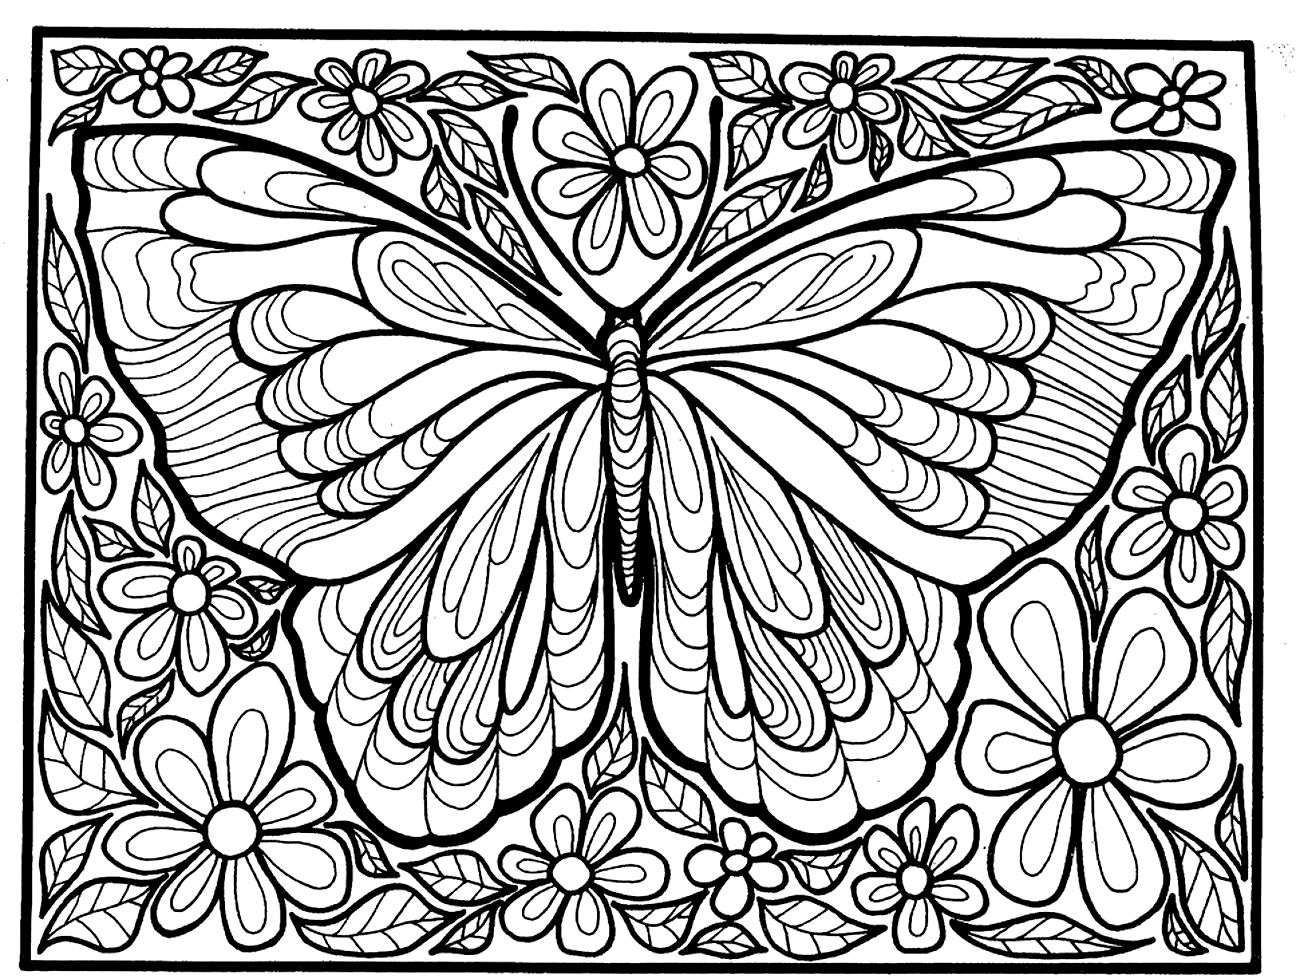 Printable Insect Coloring Pages At Getdrawings Com Free For